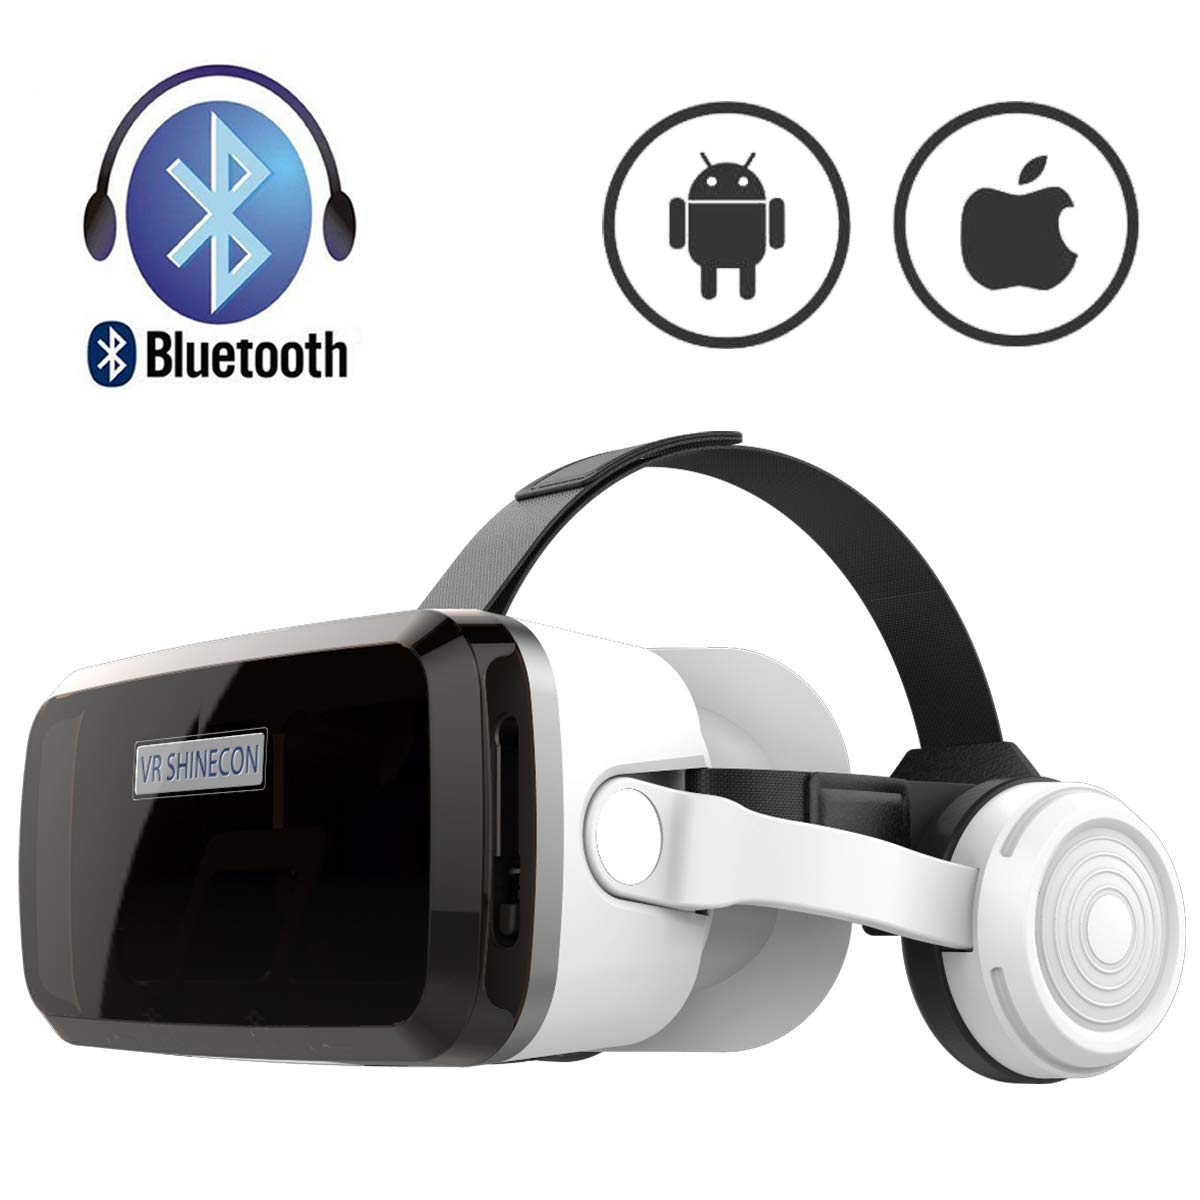 VR Headset with Bluetooth Headphones, Eye Protected HD Virtual Reality Headset,VR Glasses for iPhone and Android Phone Within 4.7-6.2Screen by VR SHINECON